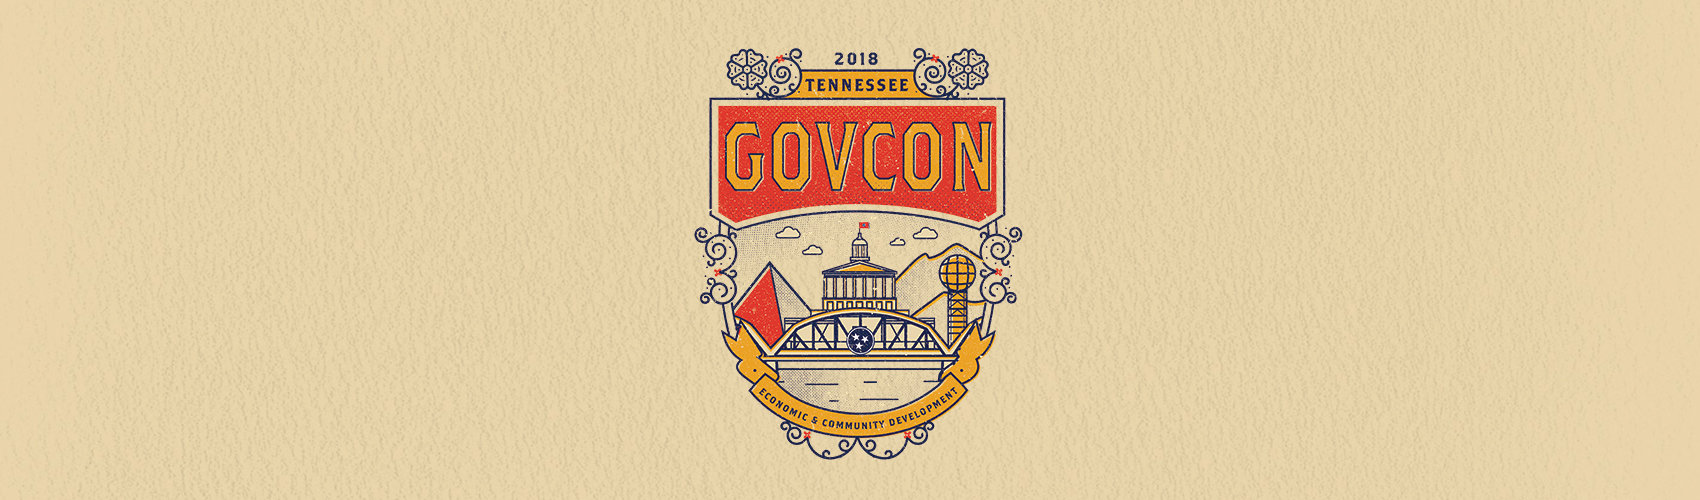 Tickets for Governor's Conference 2018 in Nashville from ShowClix